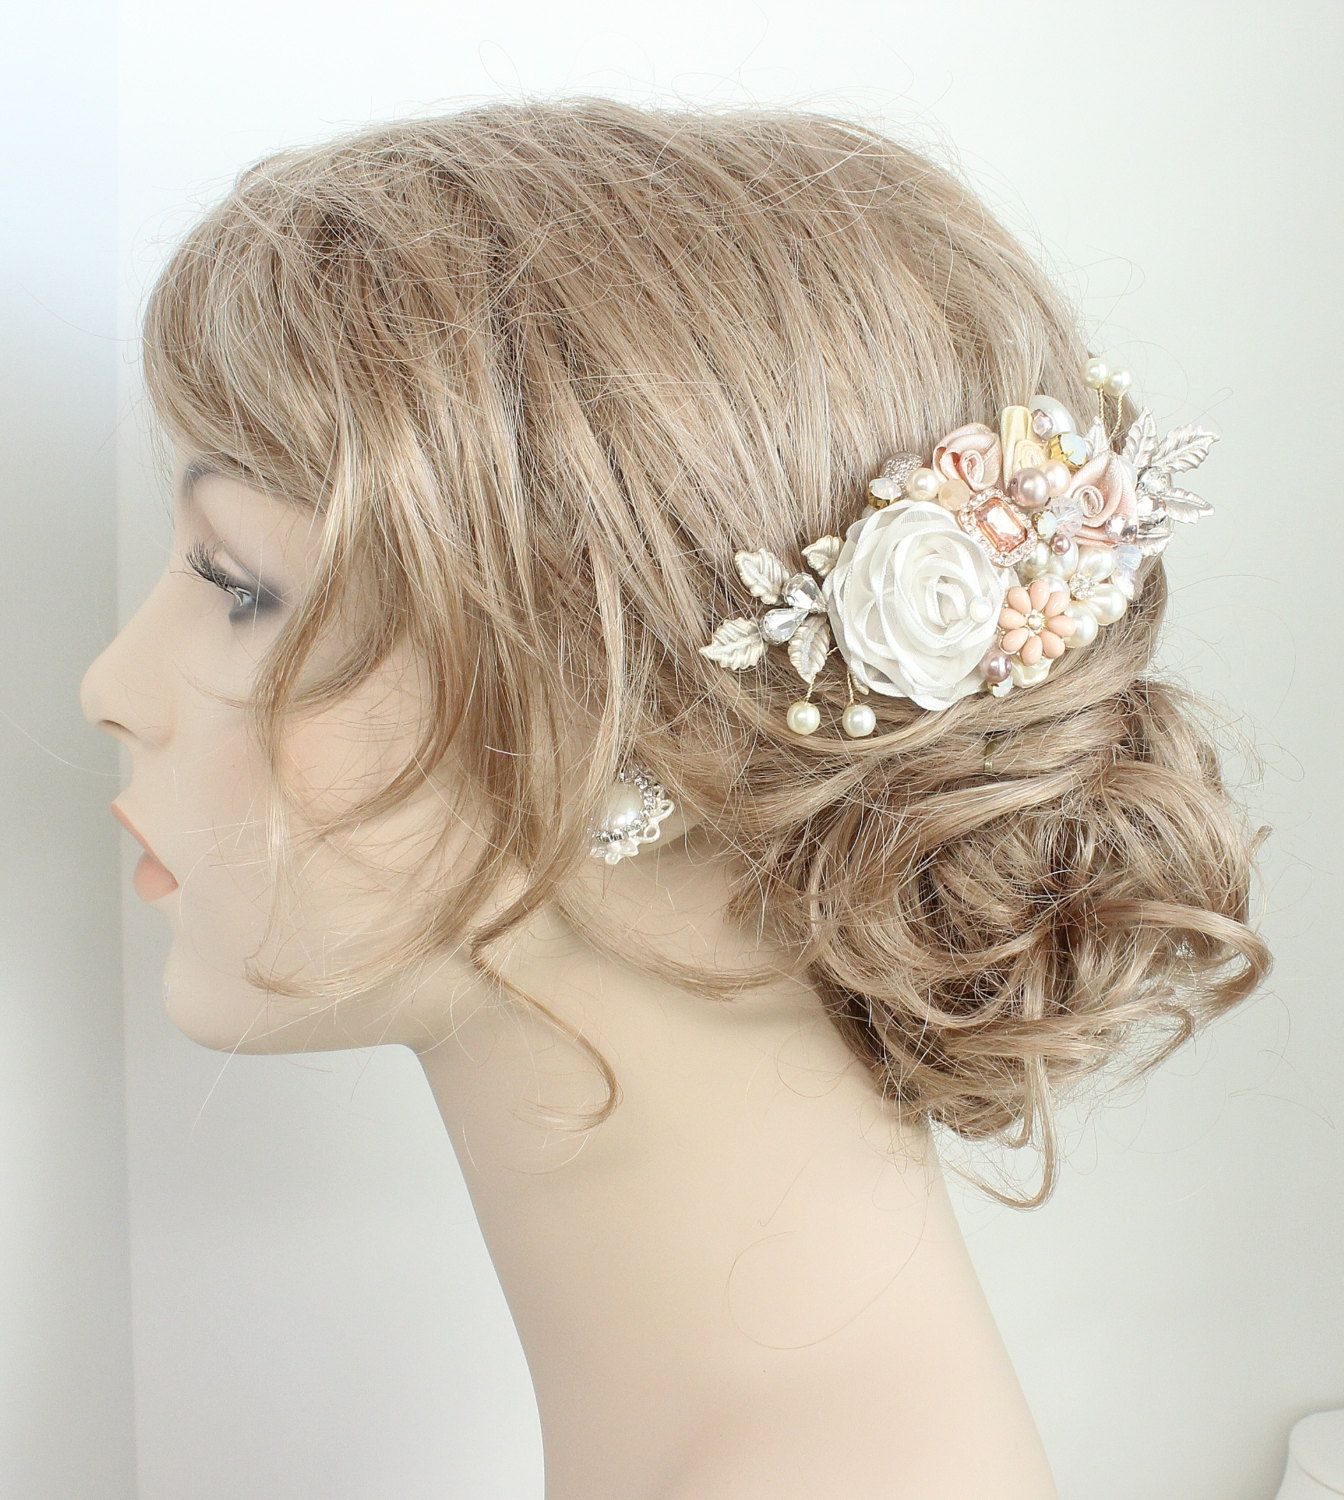 Rose gold wedding hair accessories - Rose Gold Hairpiece Rose Gold Bridal Comb Bridal Hair Accessories Wedding Hair Accessories